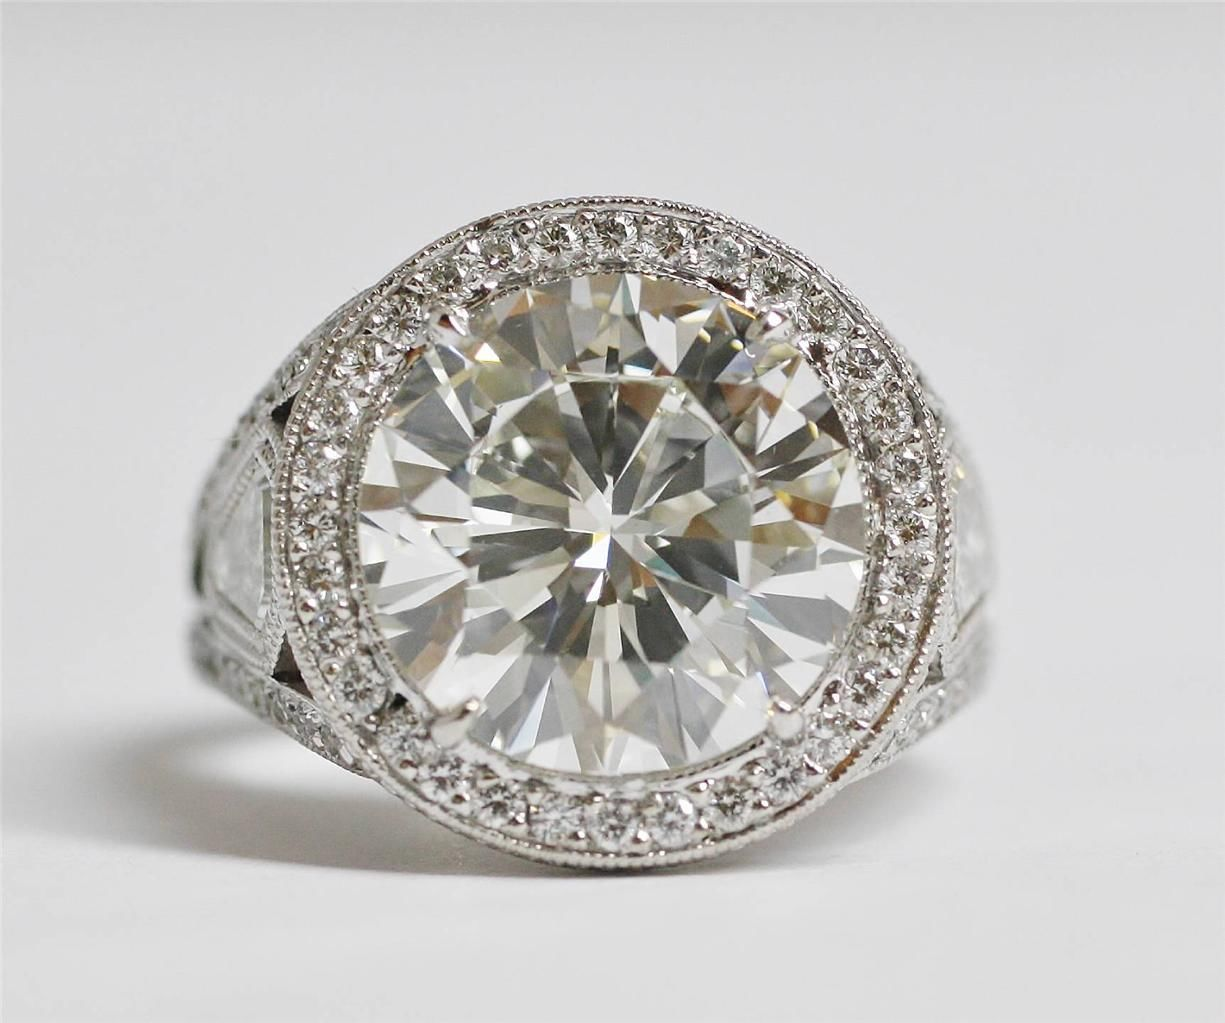 Best Place To Sell Diamond Ring In Charlotte